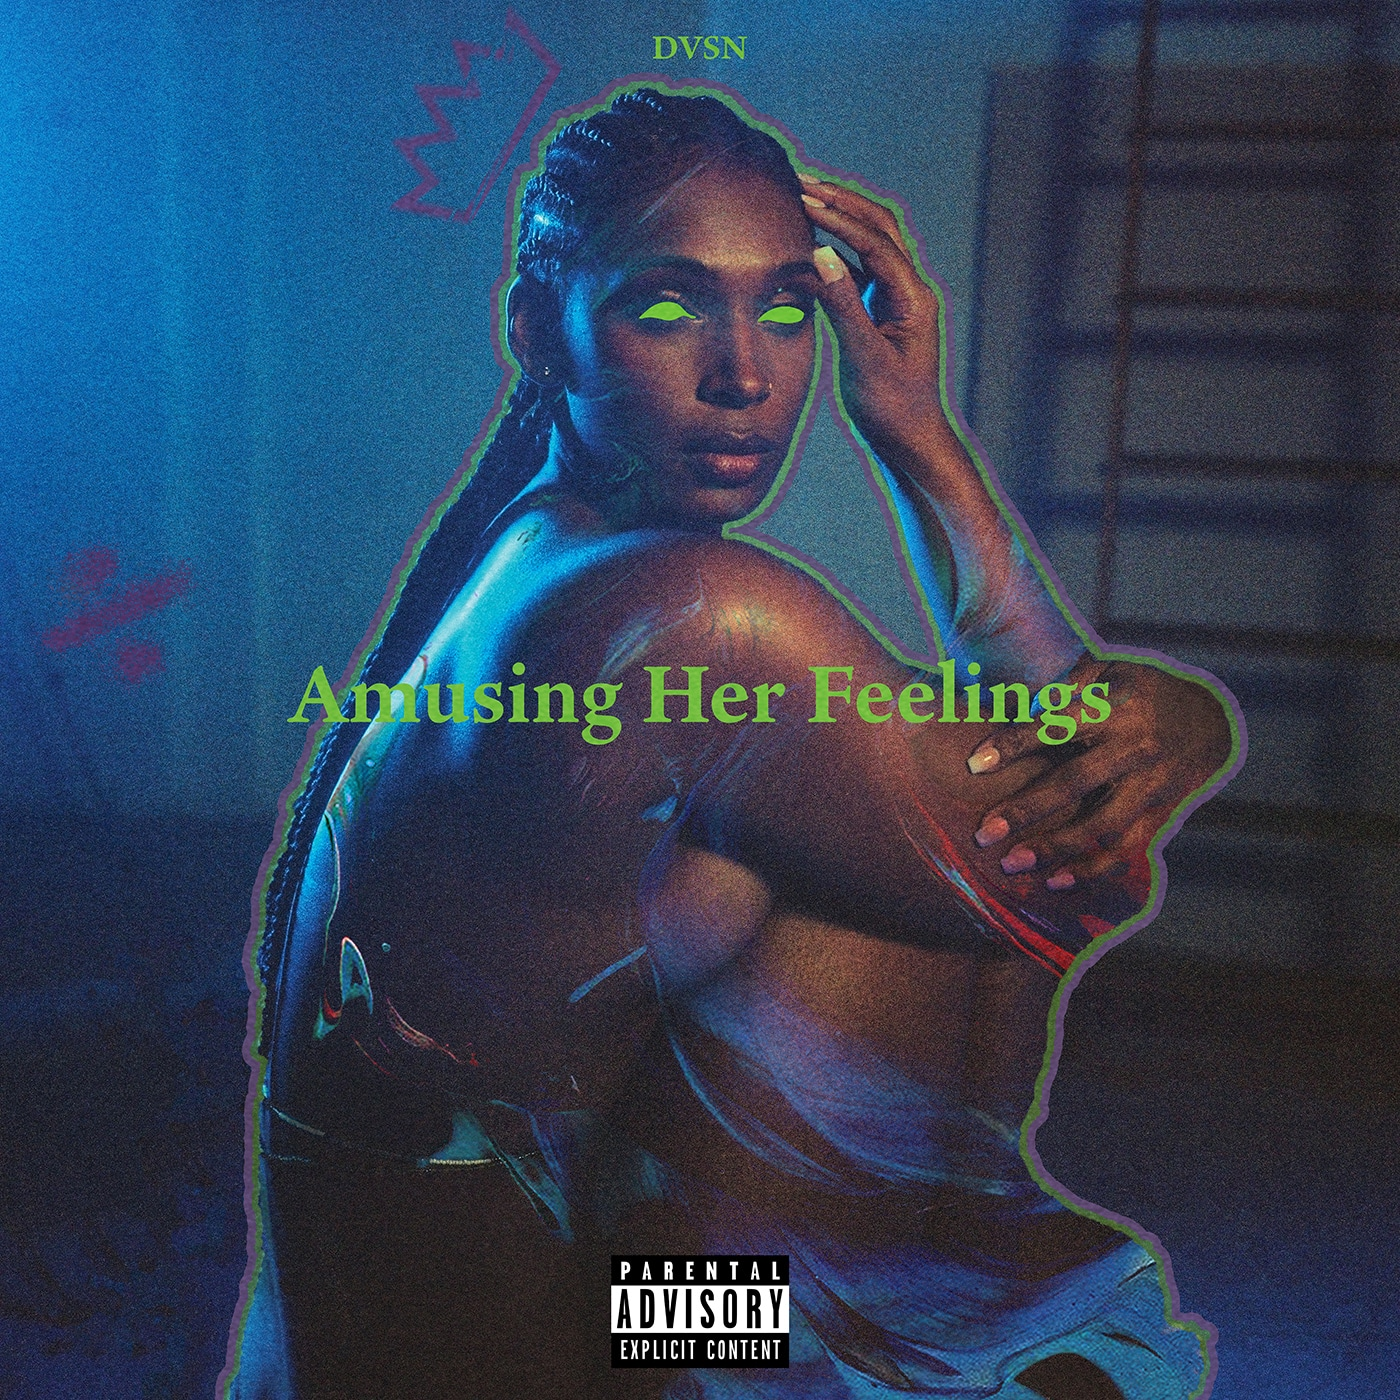 dvsn - Amusing Her Feelings album Cover